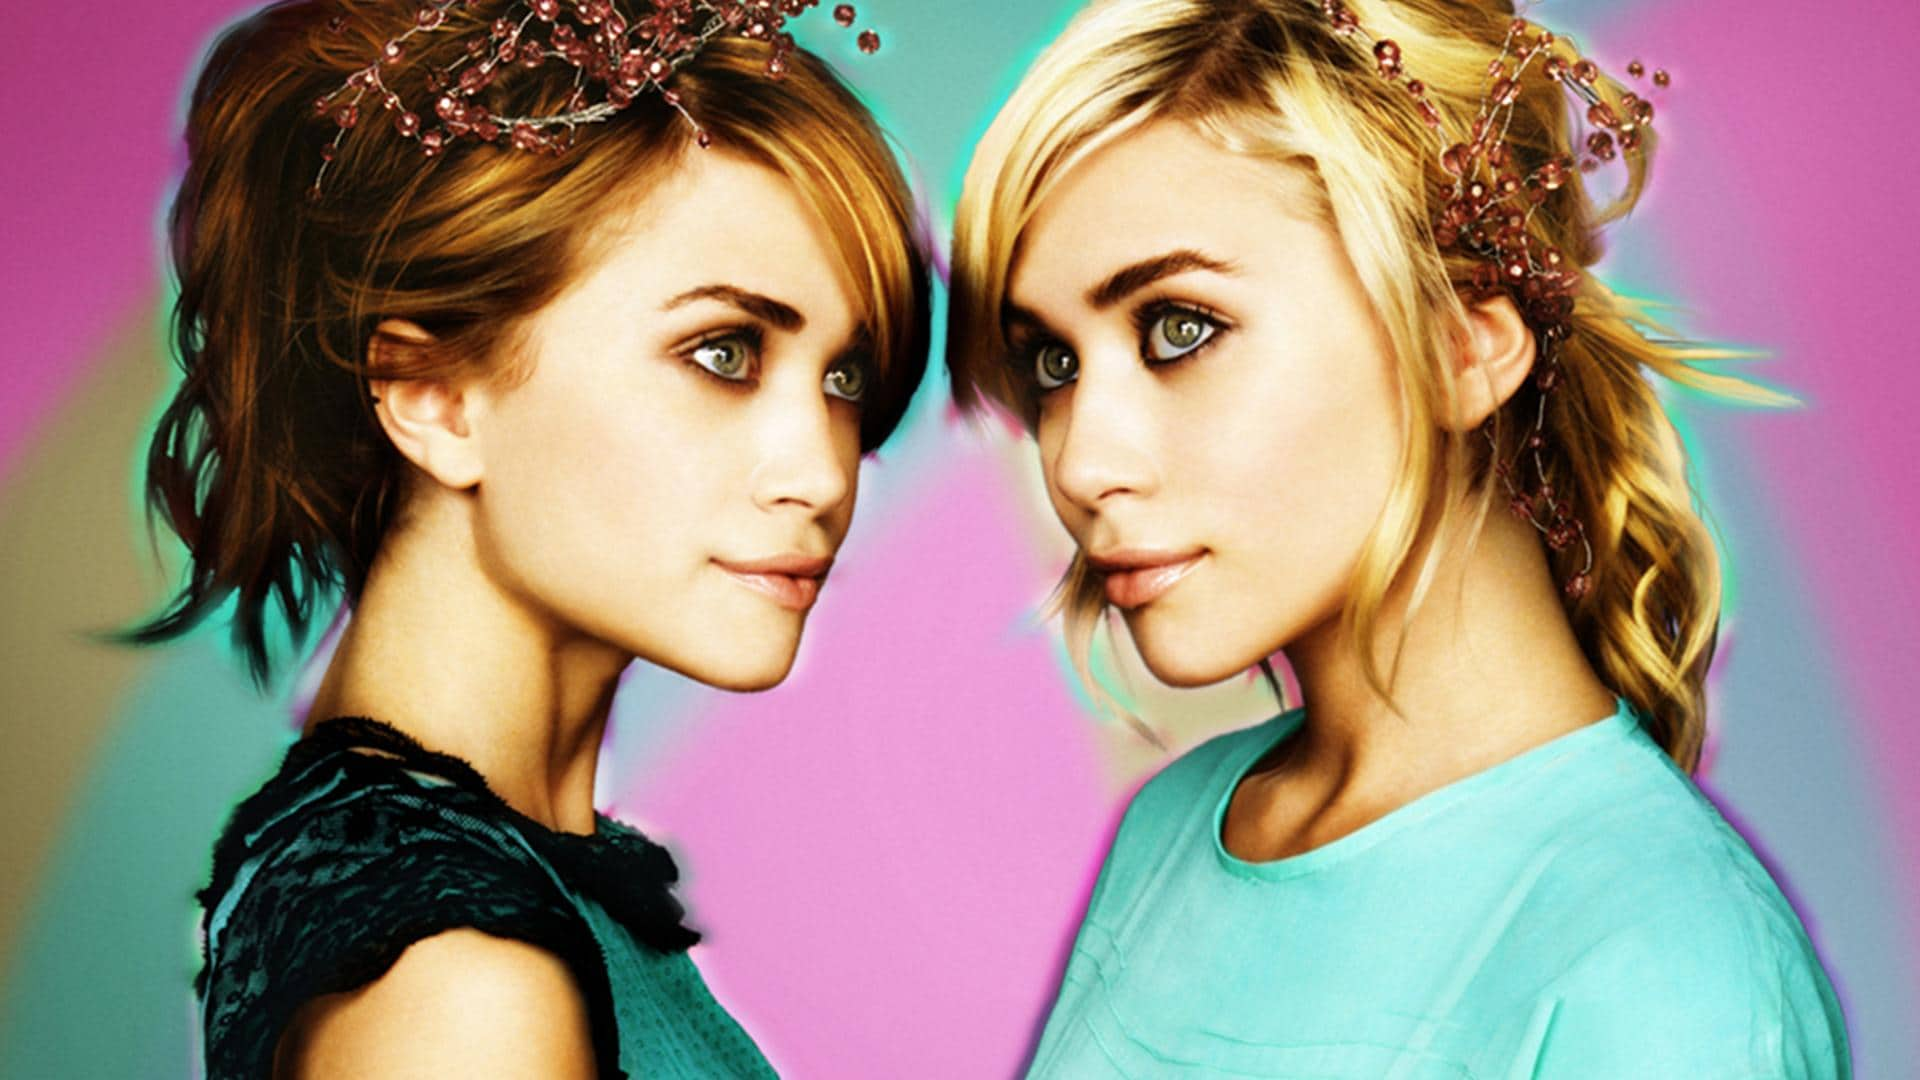 The Olsen Twins: May 15, 2004